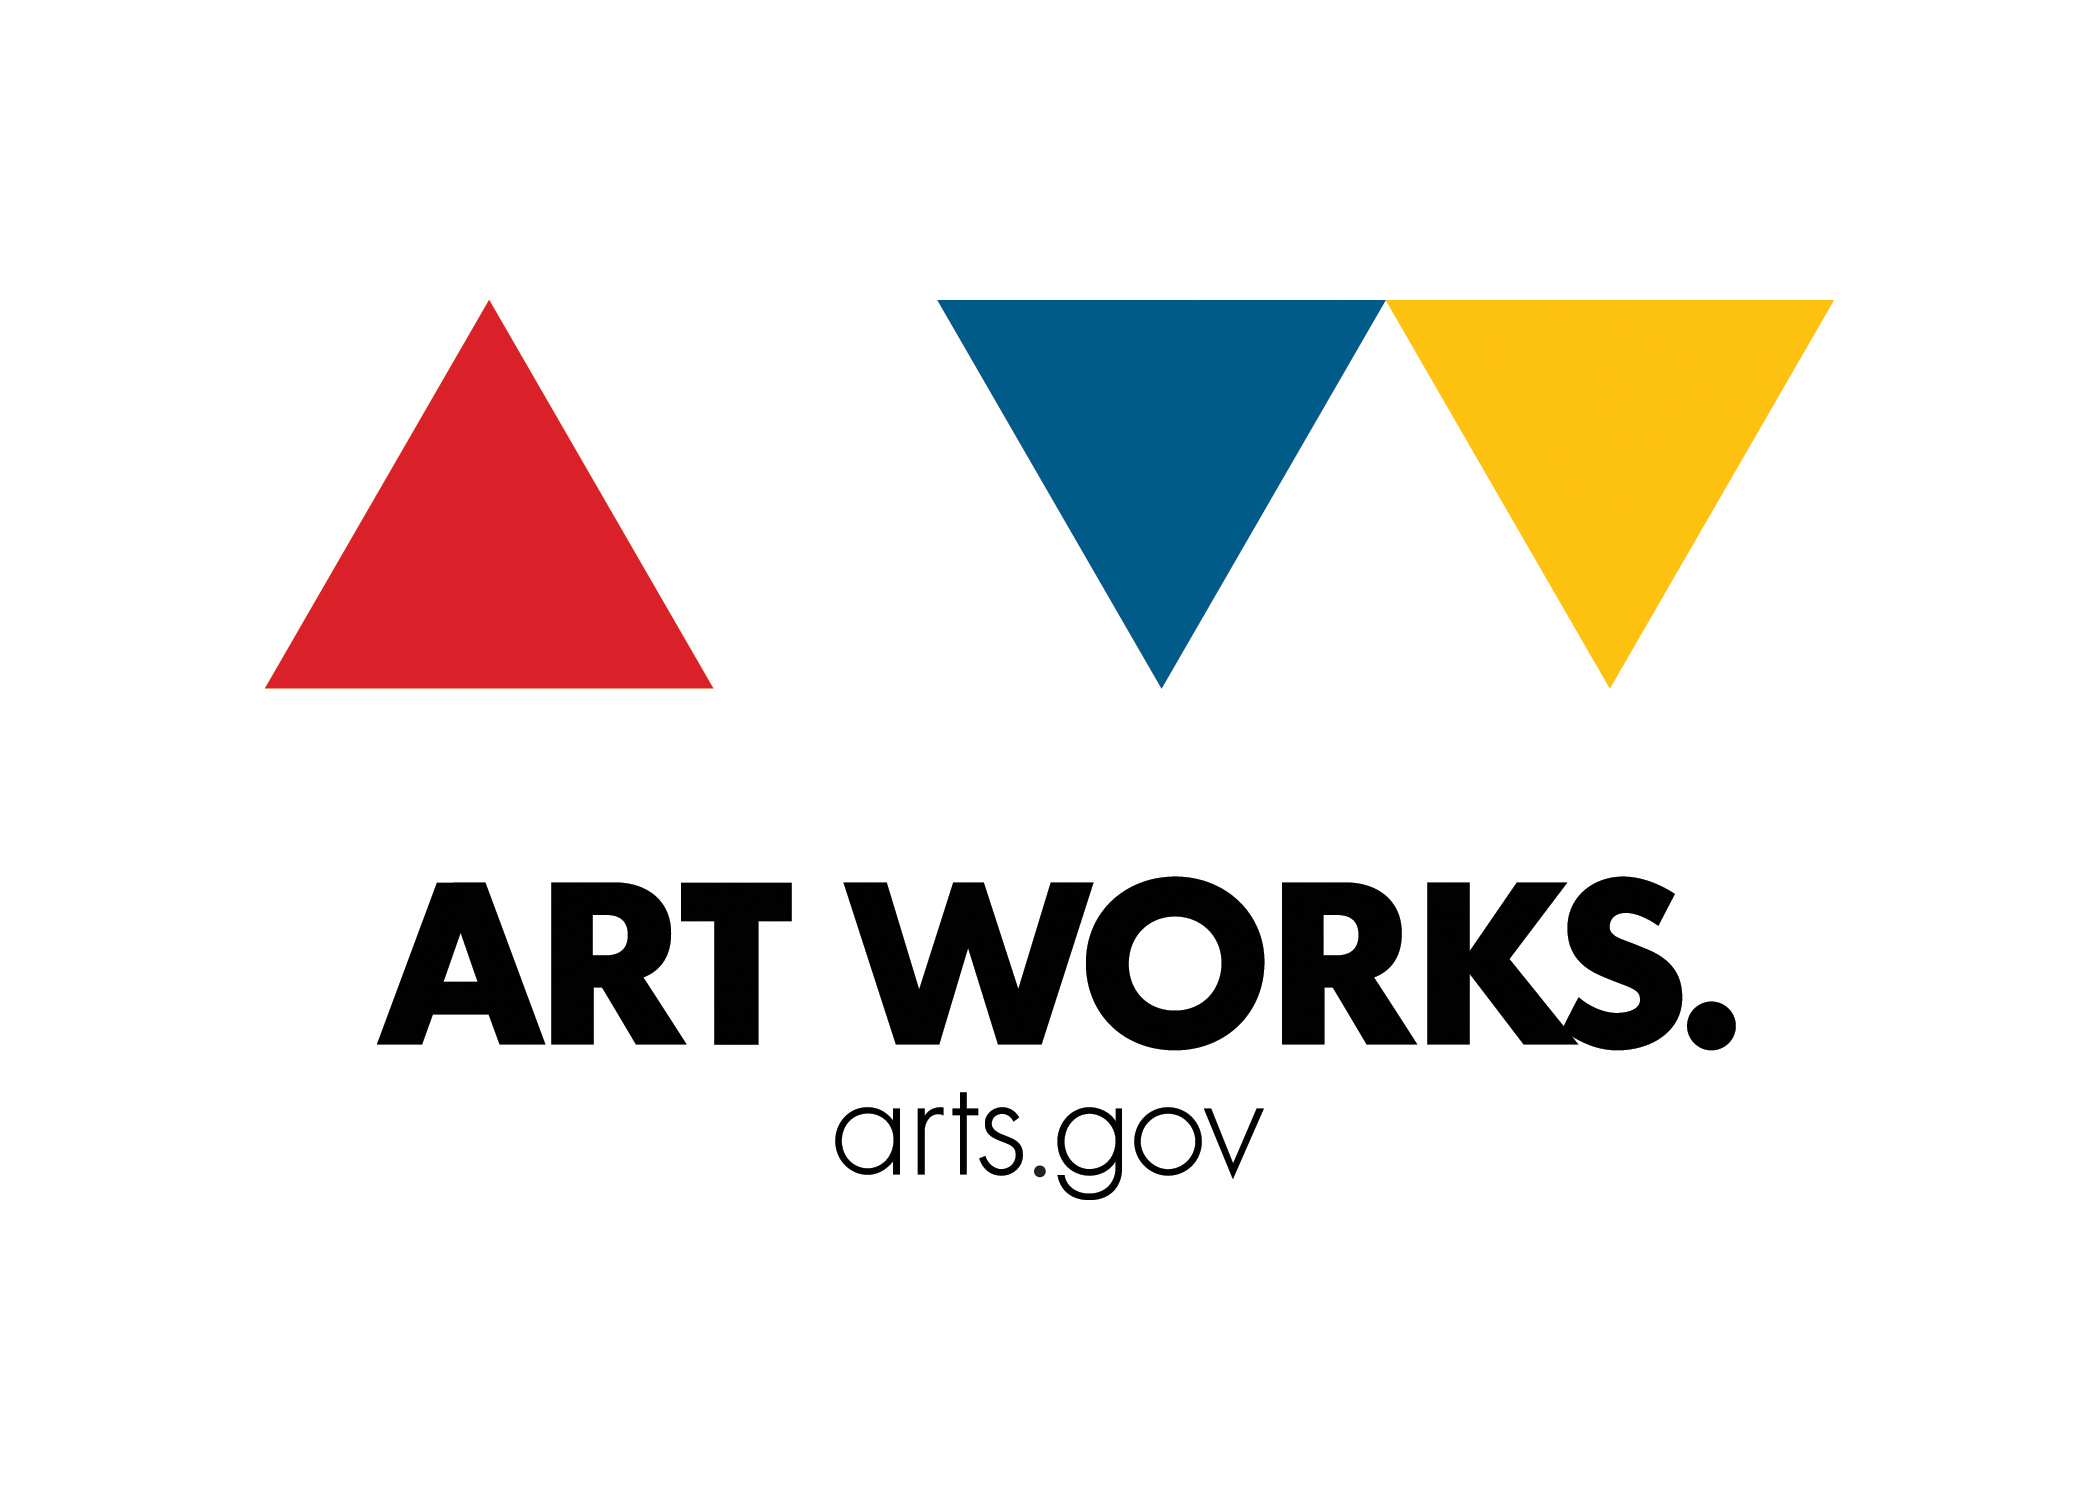 Logo of the National Endowment for the Arts.